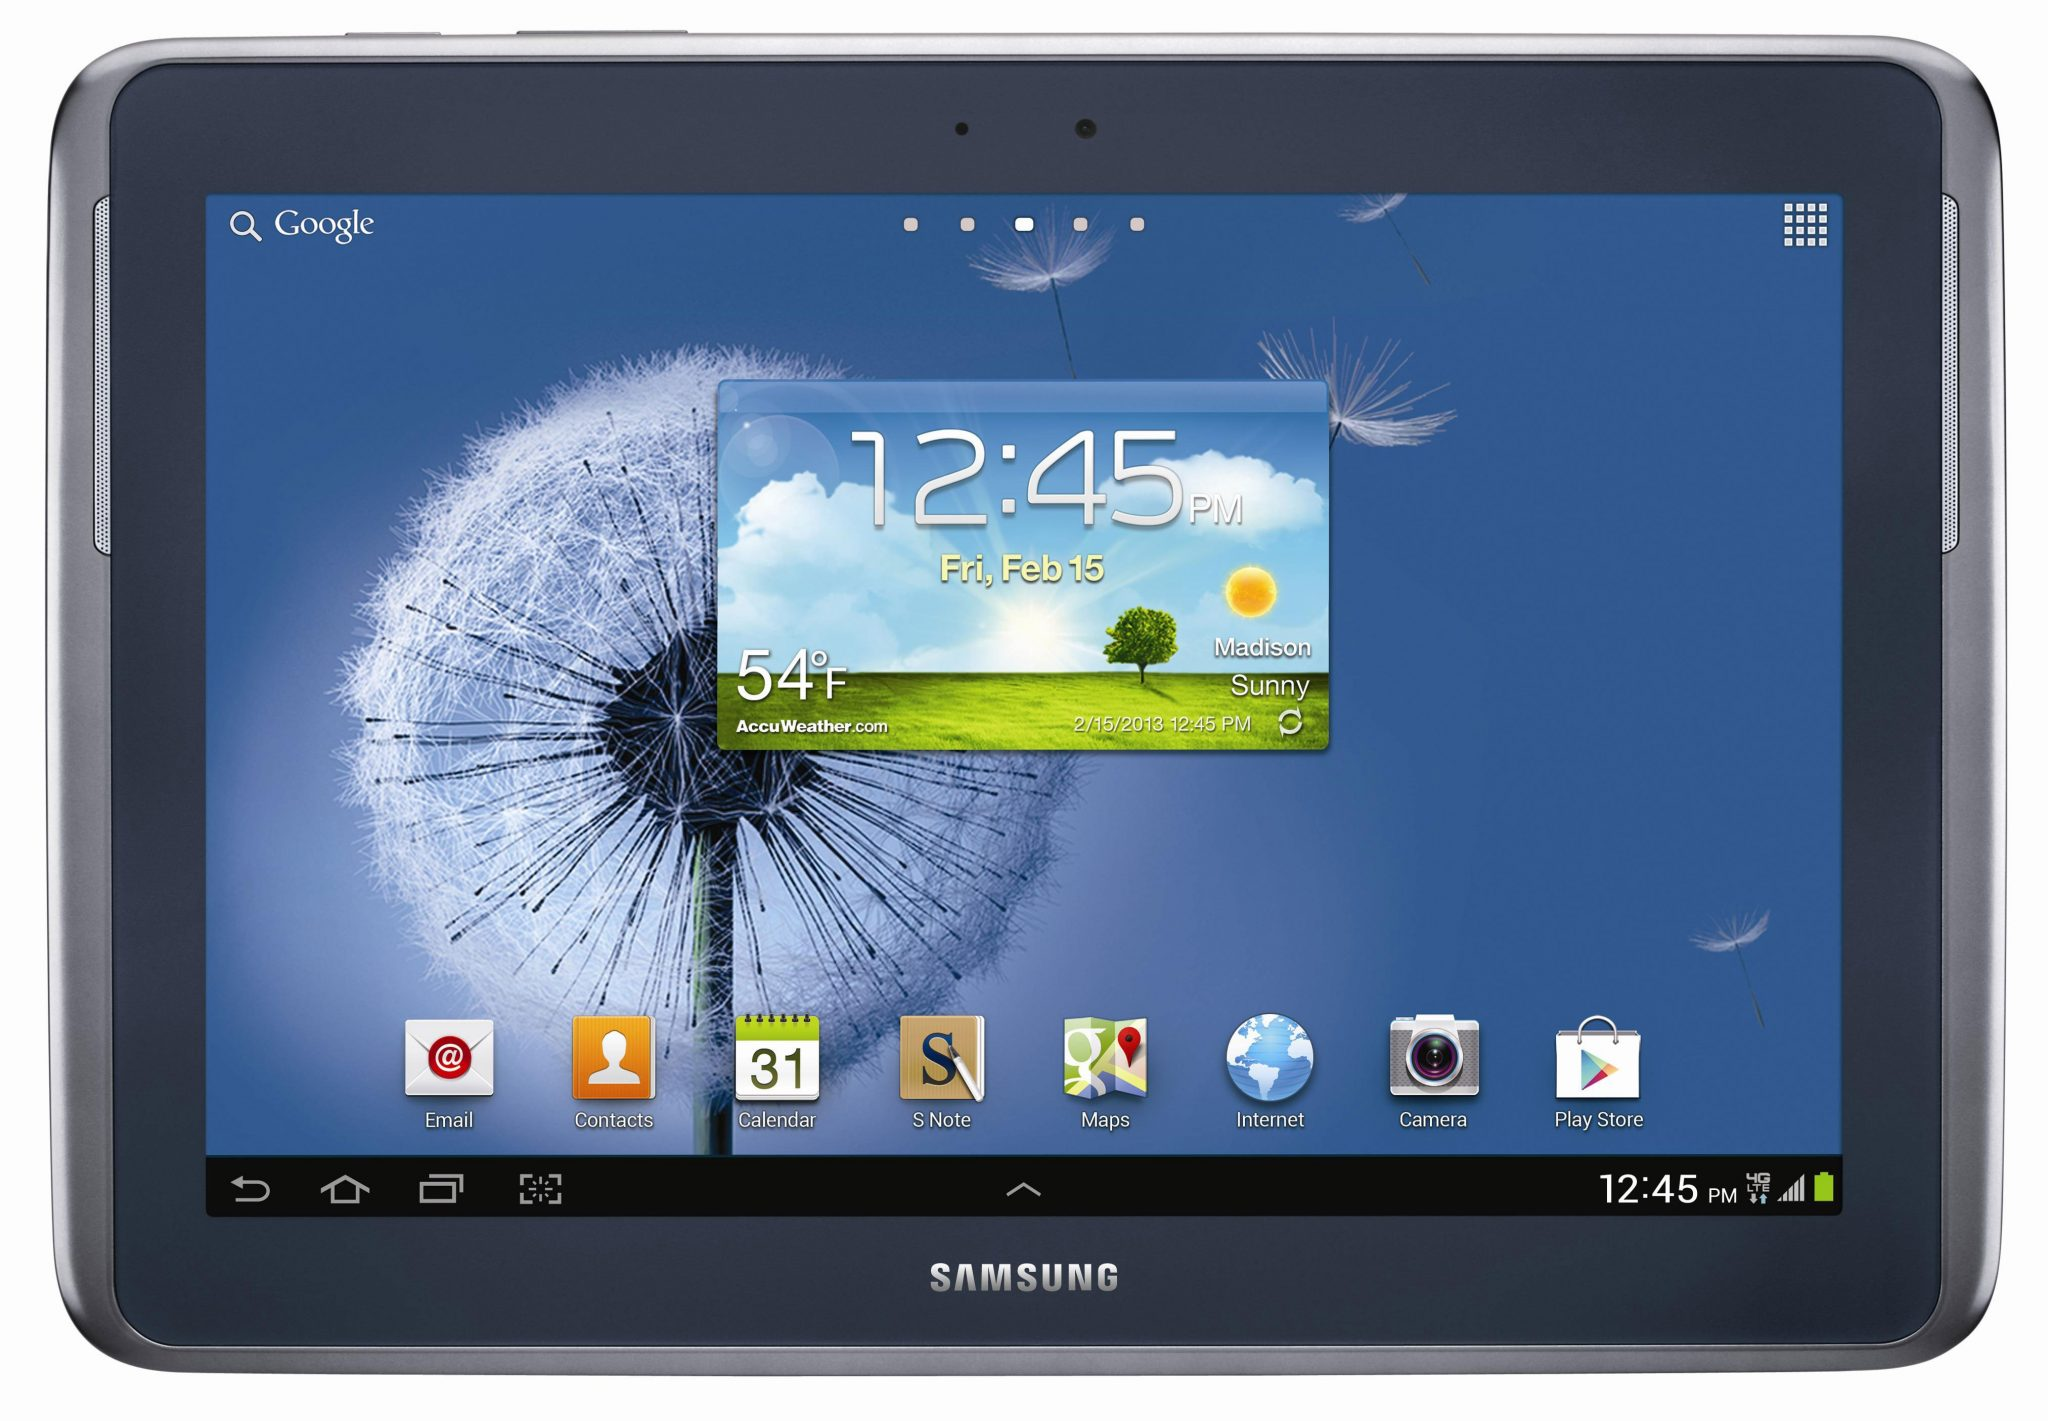 Stock Rom / Firmware Samsung Galaxy Note 10.1 GT-N8020 Android 4.4.2 KitKat  - Stock Rom